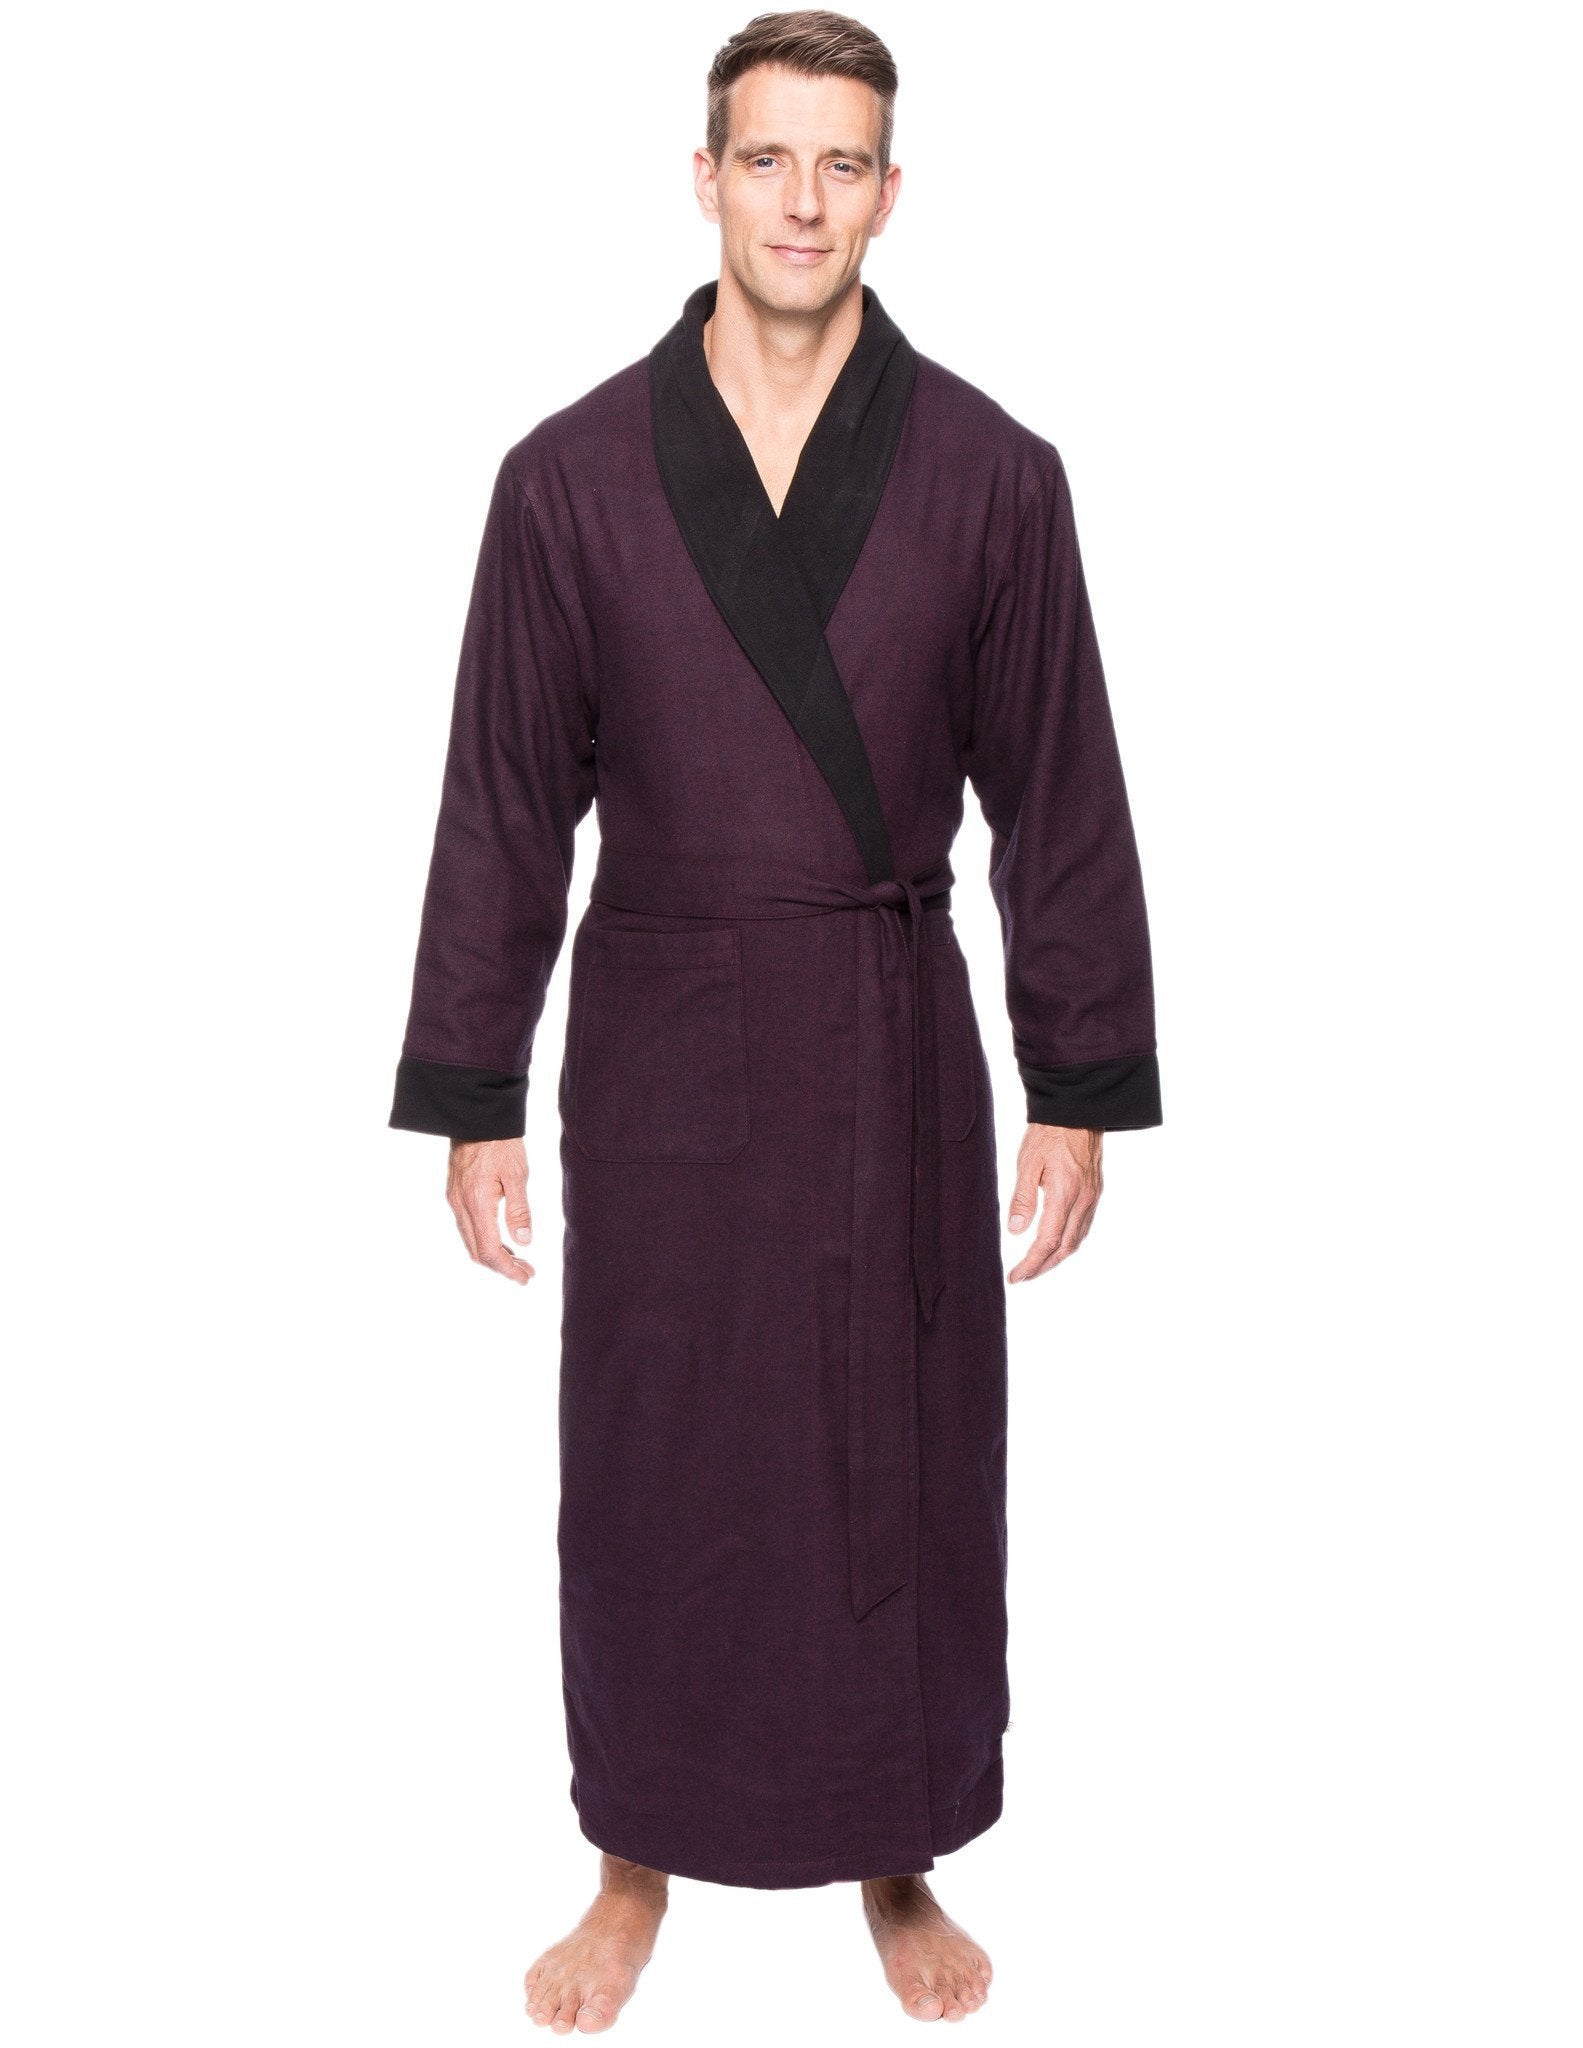 Men's Premium 100% Cotton Flannel Fleece Lined Robe - Herringbone Fig/Black